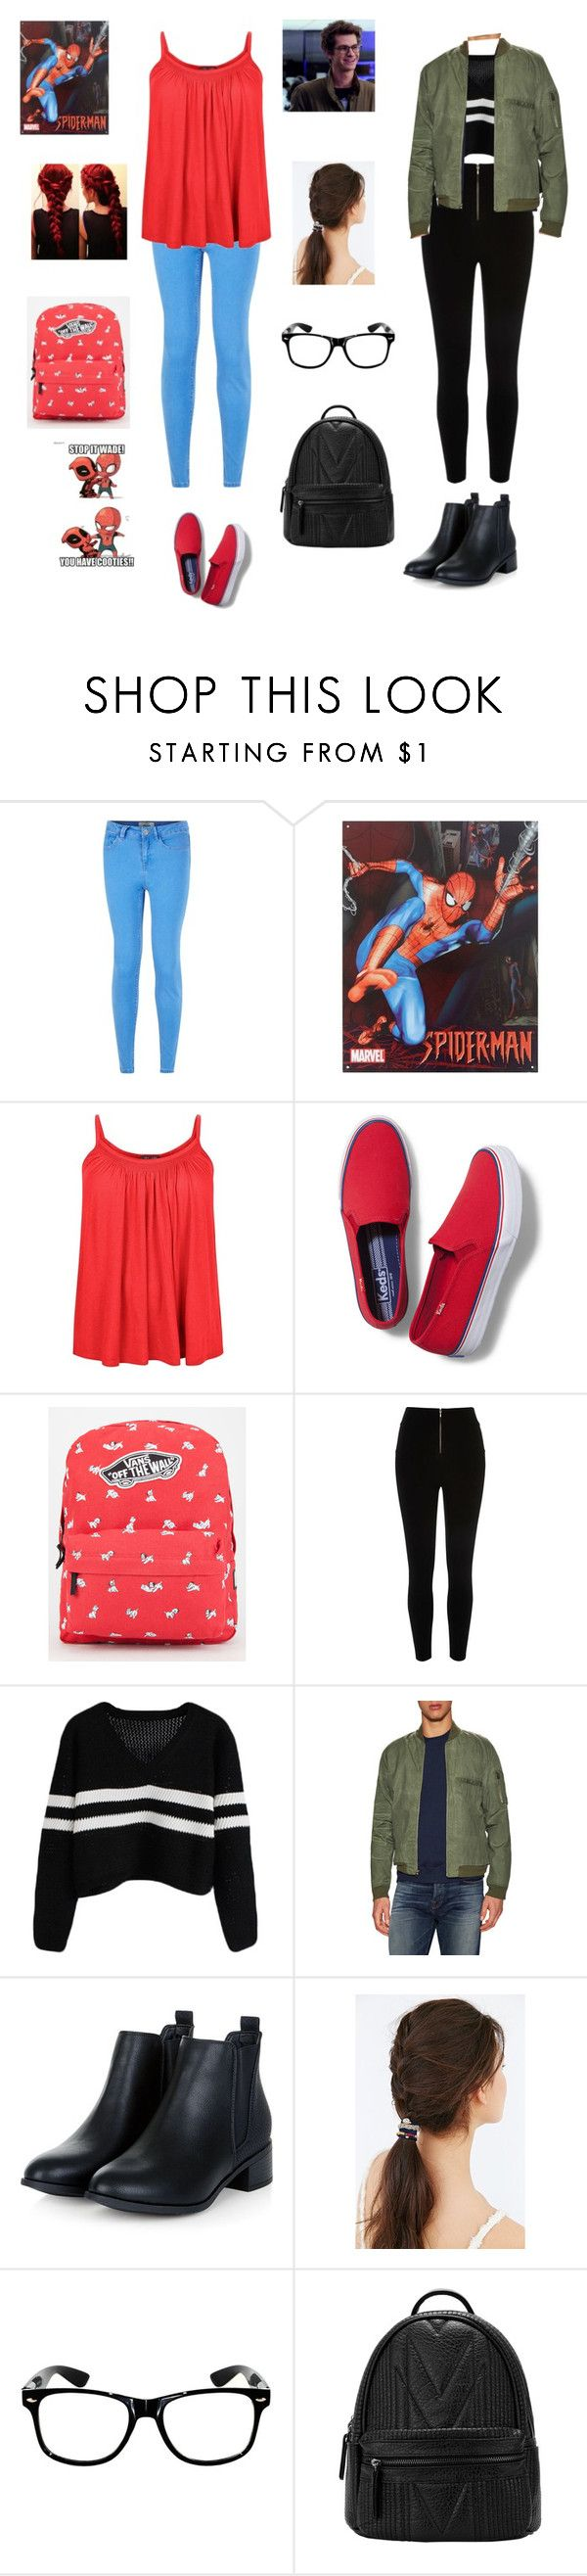 """""""Spiderman aka Peter Parker"""" by tina-a-unicorn ❤ liked on Polyvore featuring New Look, Keds, Vans, River Island, Tavik Swimwear and Urban Outfitters"""